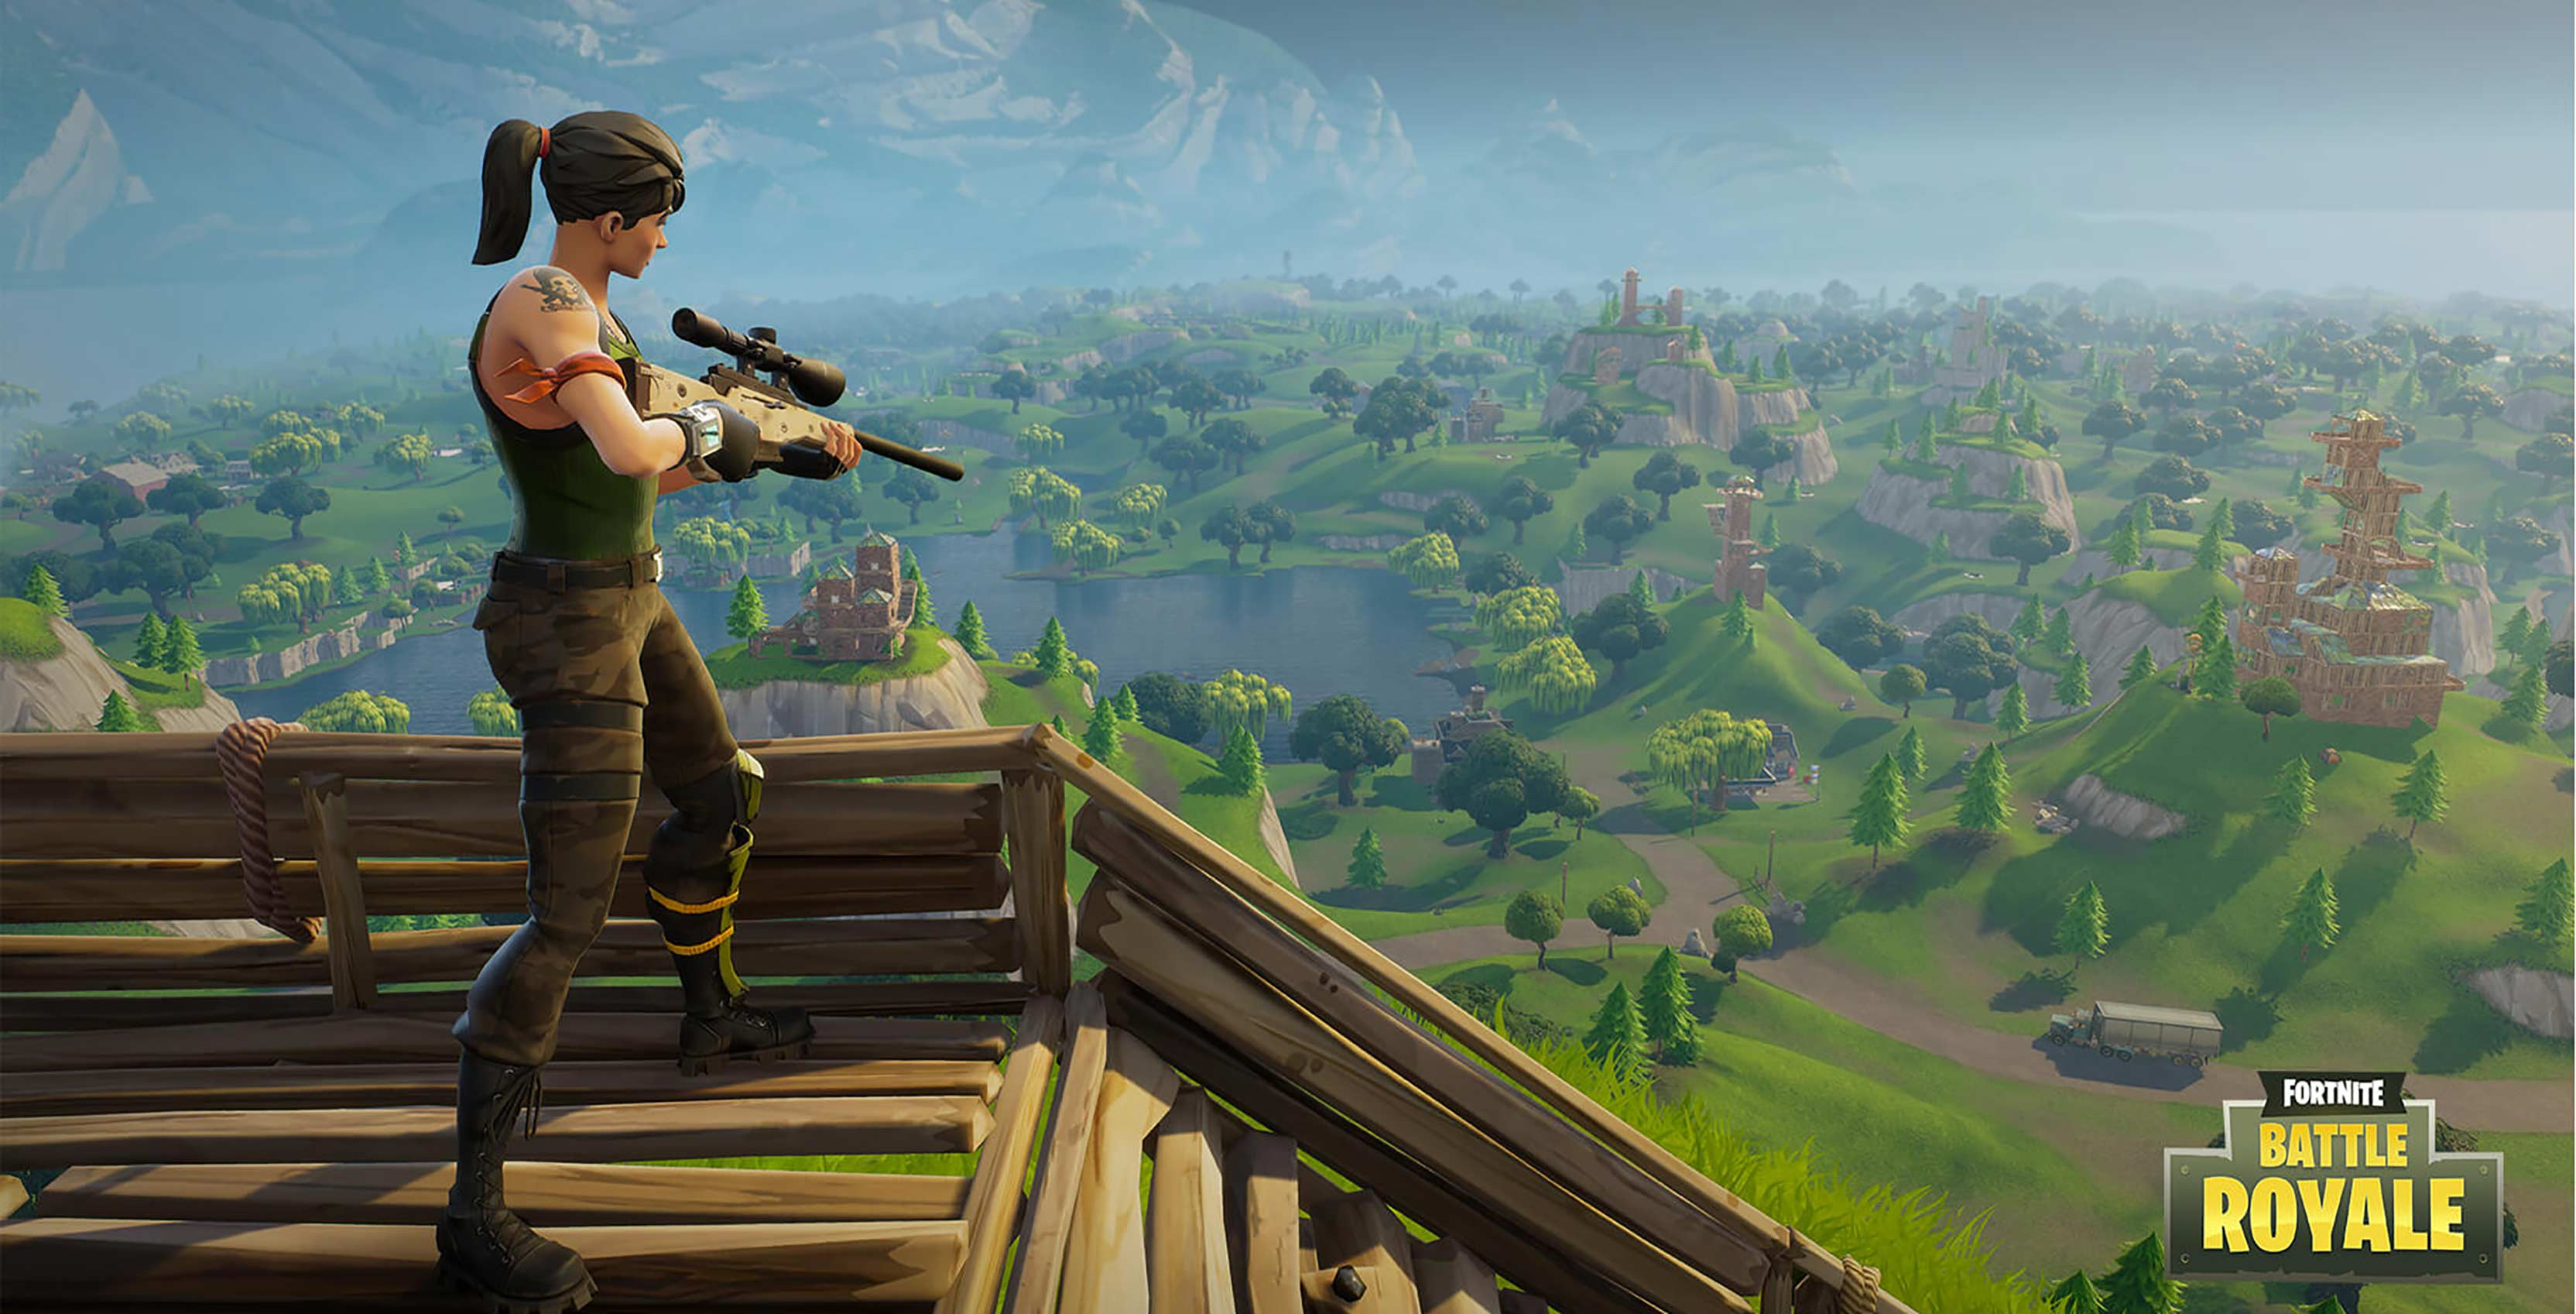 Malicious code is spreading through Fortnite: Battle Royale APKs for